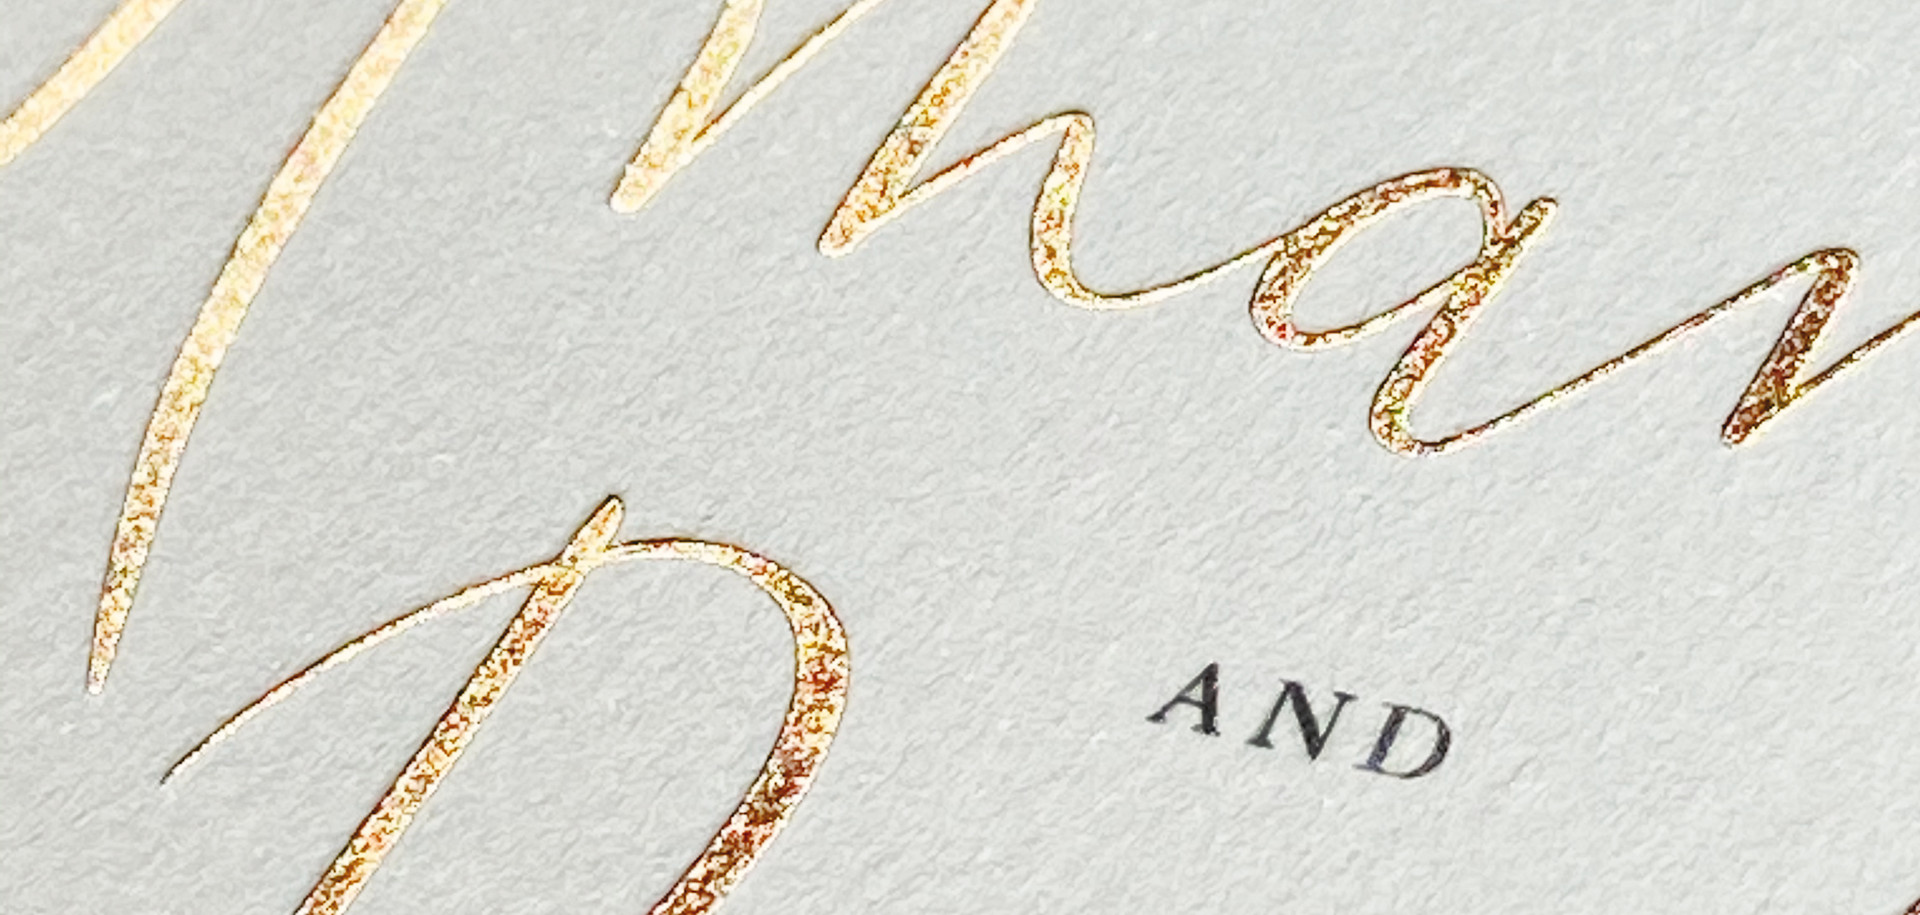 GoldFoil_close-up.jpg